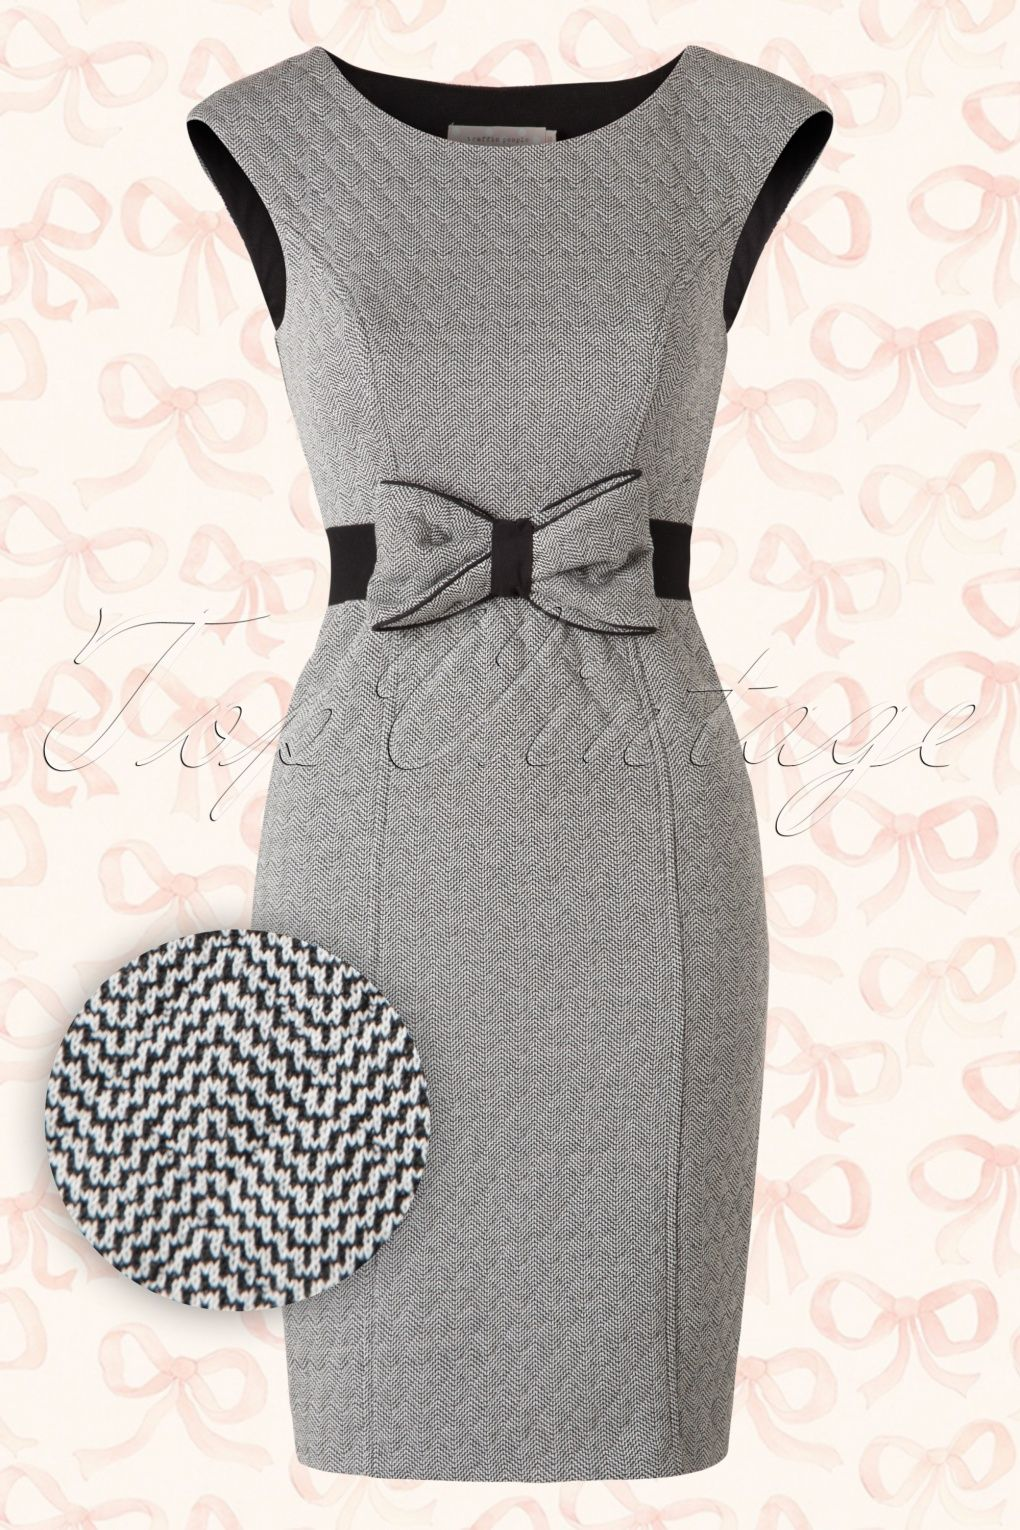 Dezeunbsps show me the way to go home artful bow dress in